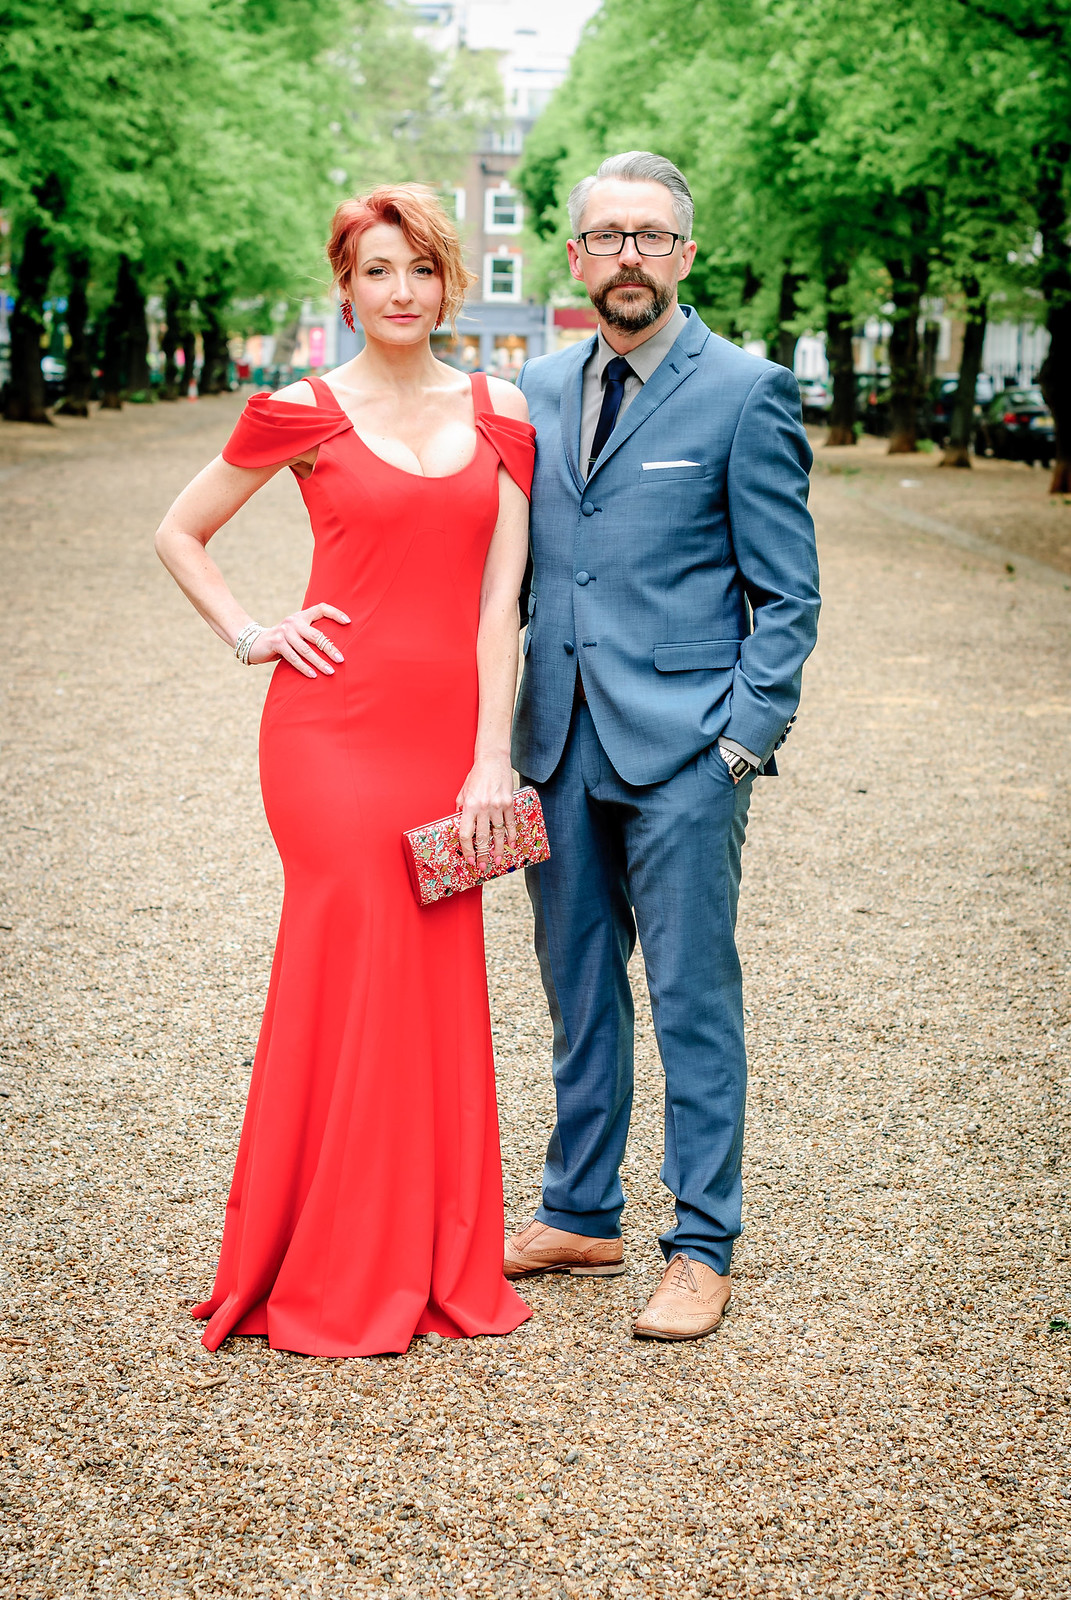 Awards ceremony outfit - Her: Long red fitted gown with shoulder detail \ Him: Mid blue suit with dark tie and tan brogues | Not Dressed As Lamb, over 40 style